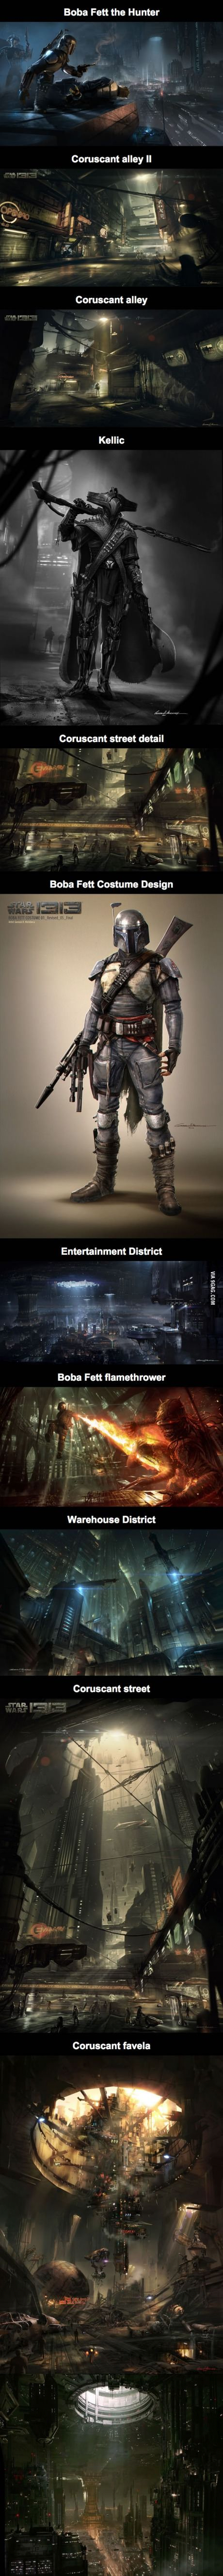 Star Wars 1313 - the game starring Boba Fett, set on Coruscant, that could have been.